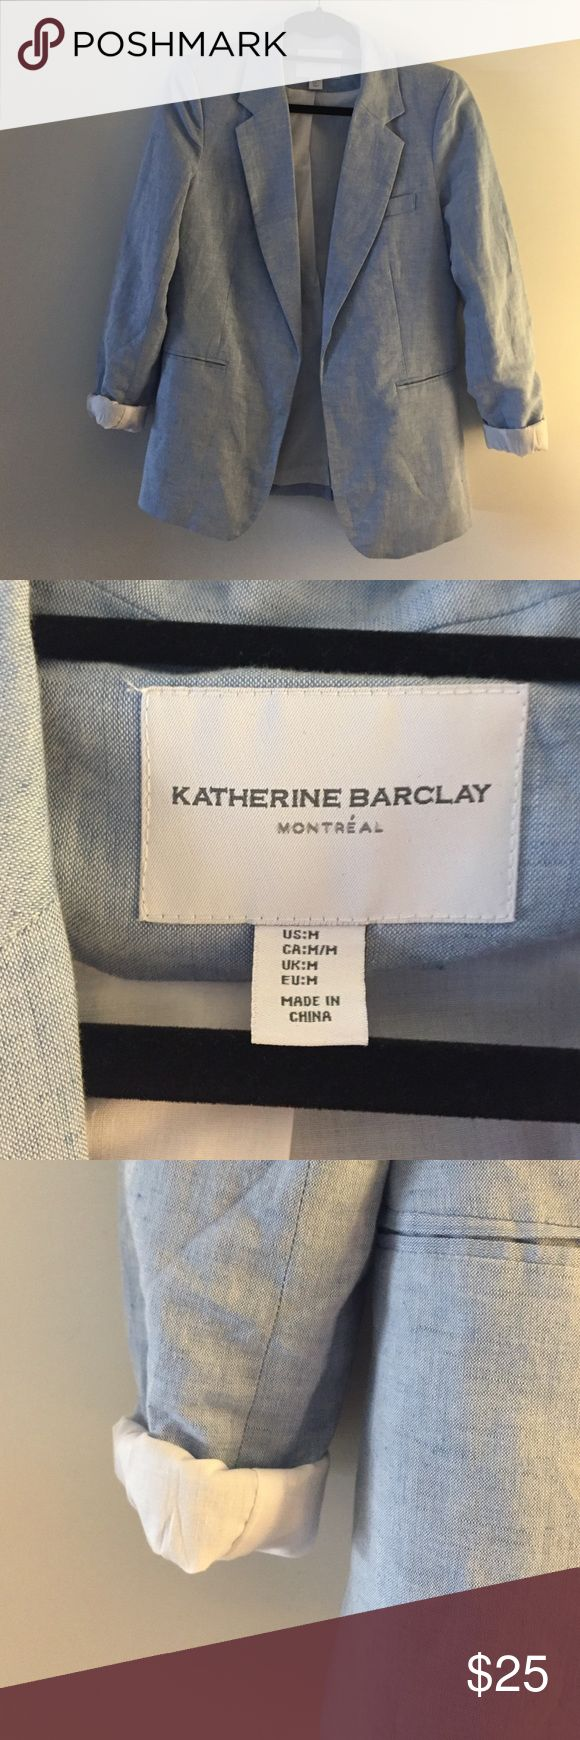 🔹 Light Blue Blazer 🔹 Katherine Barclay blazer. Never worn. Super cute and comfy. Wear it over a cute dress or with a pant suit. Katherine Barclay Jackets & Coats Blazers